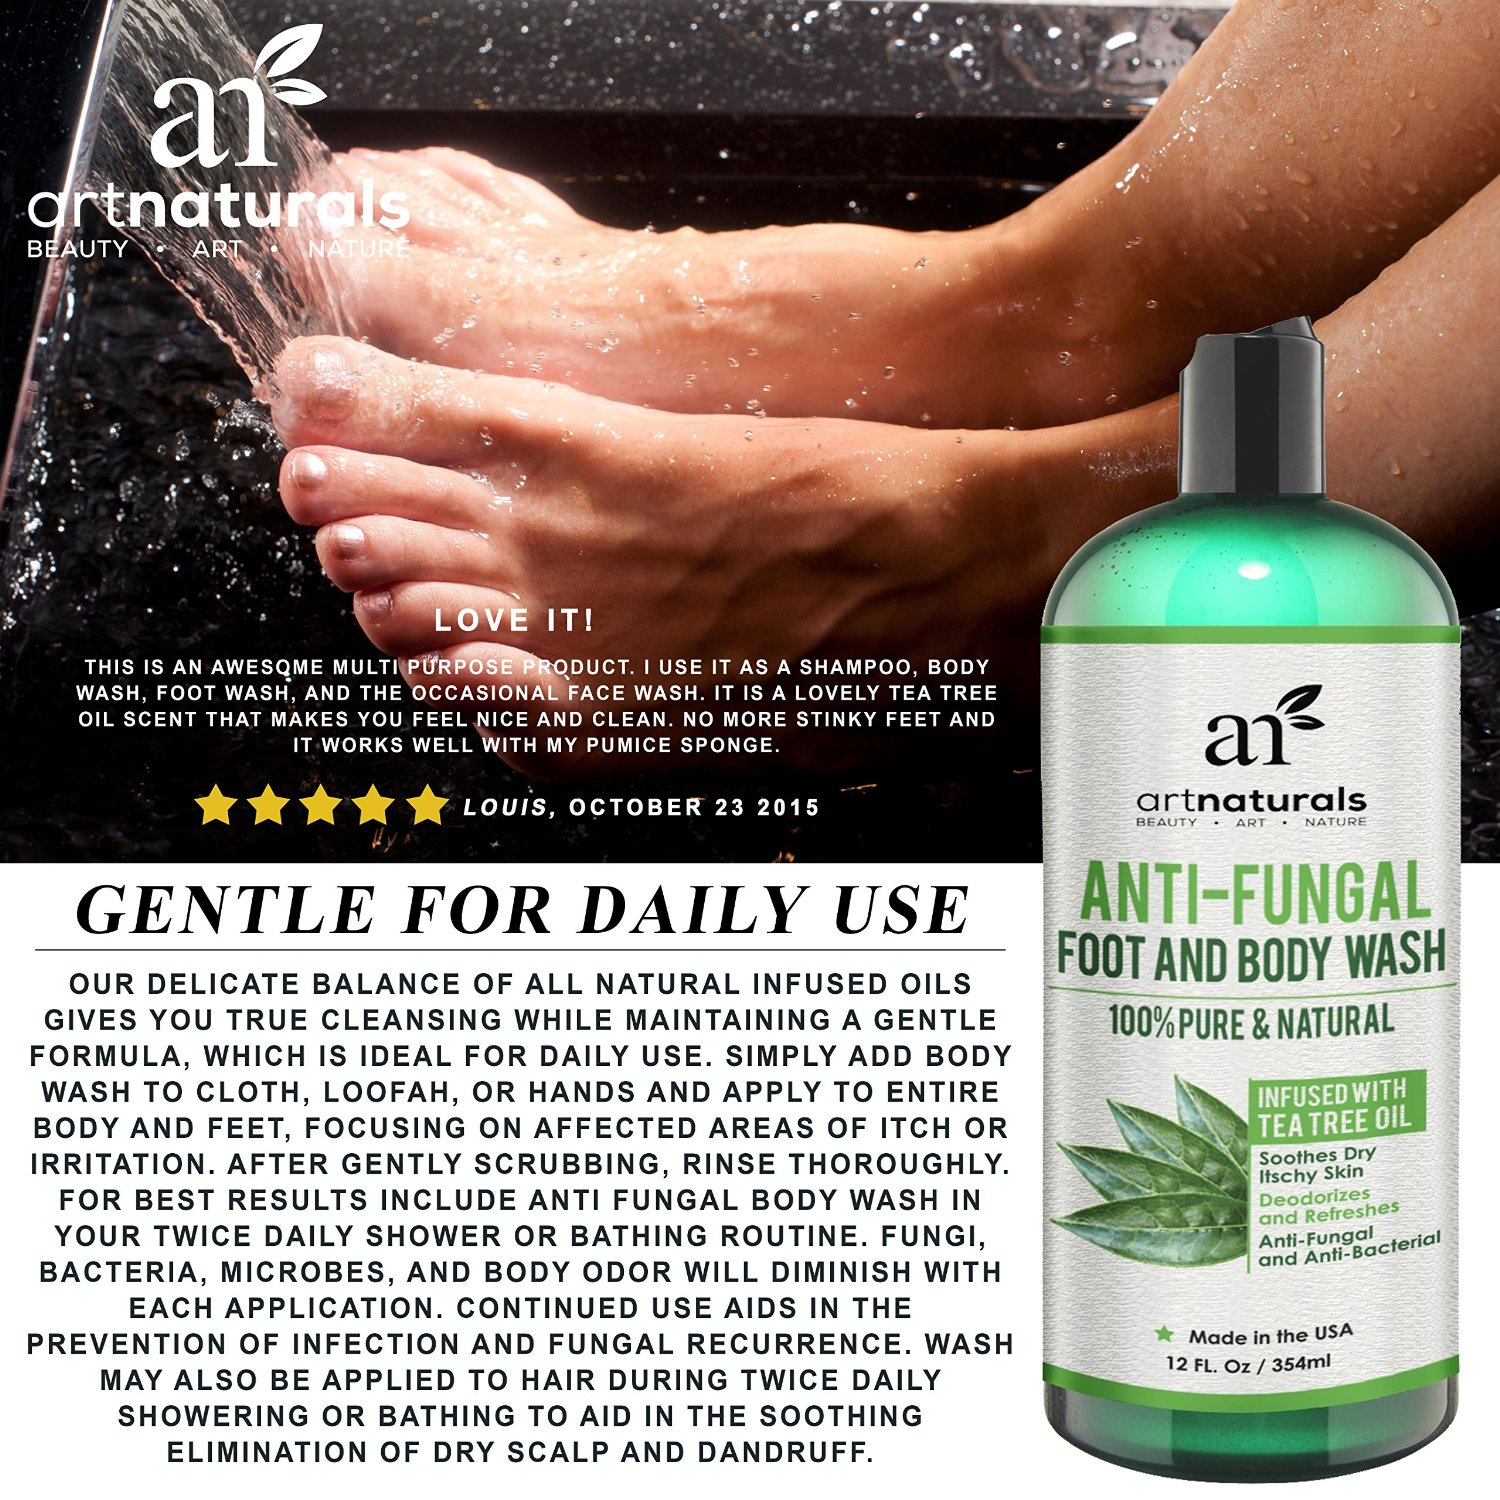 Artnaturals Body and Foot Wash daily use